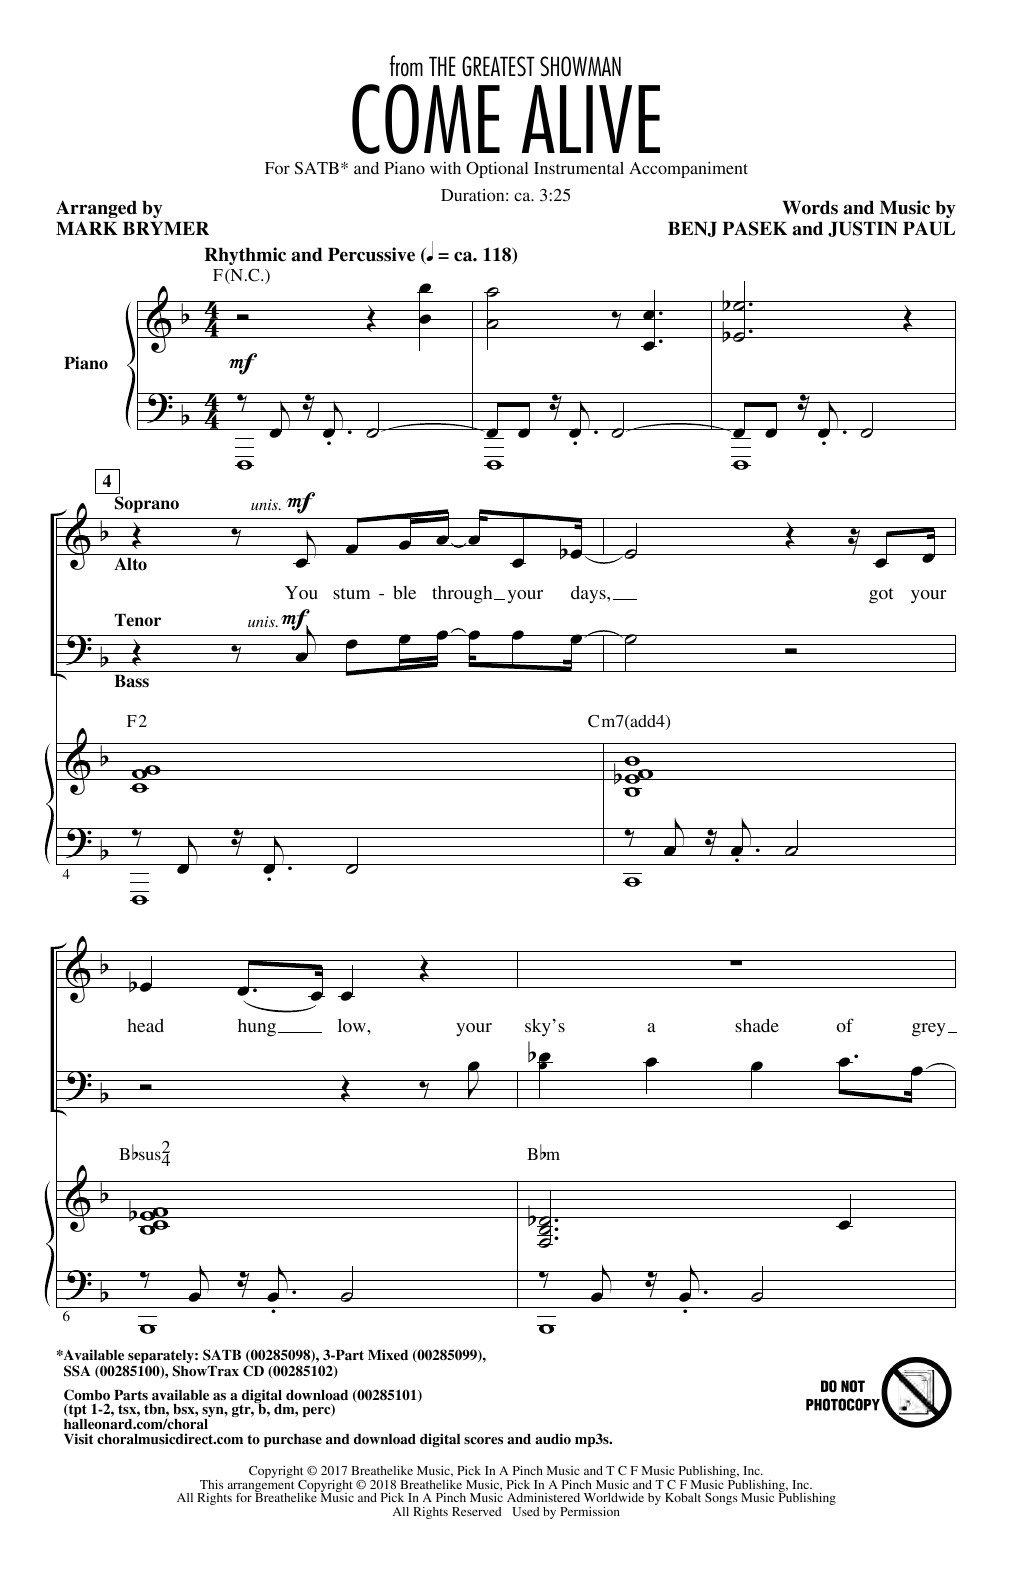 Pasek & Paul 'Come Alive (from The Greatest Showman) (Arr  Mark Brymer)'  Sheet Music Notes, Chords   Download Printable Choral - SKU: 403186